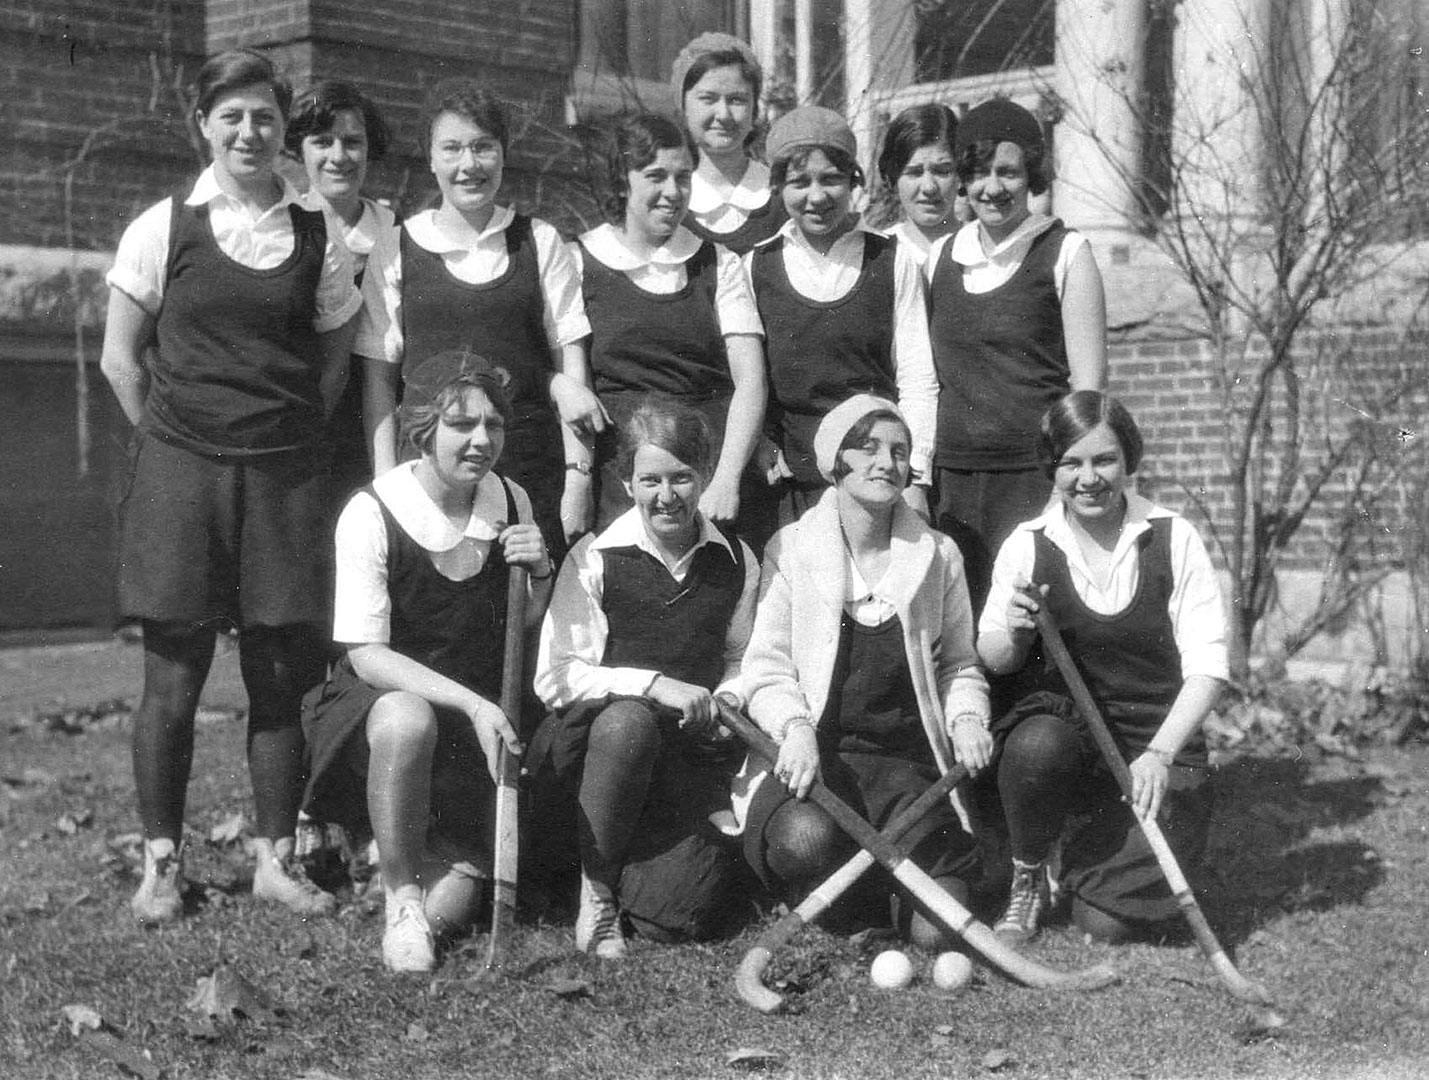 The championship intramural field hockey team of 1930. As it did in its first year of 1929-30, the Bates Fund provides annual financial support to academics and student life. Photo courtesy of the Muskie Archives and Special Collections Library.